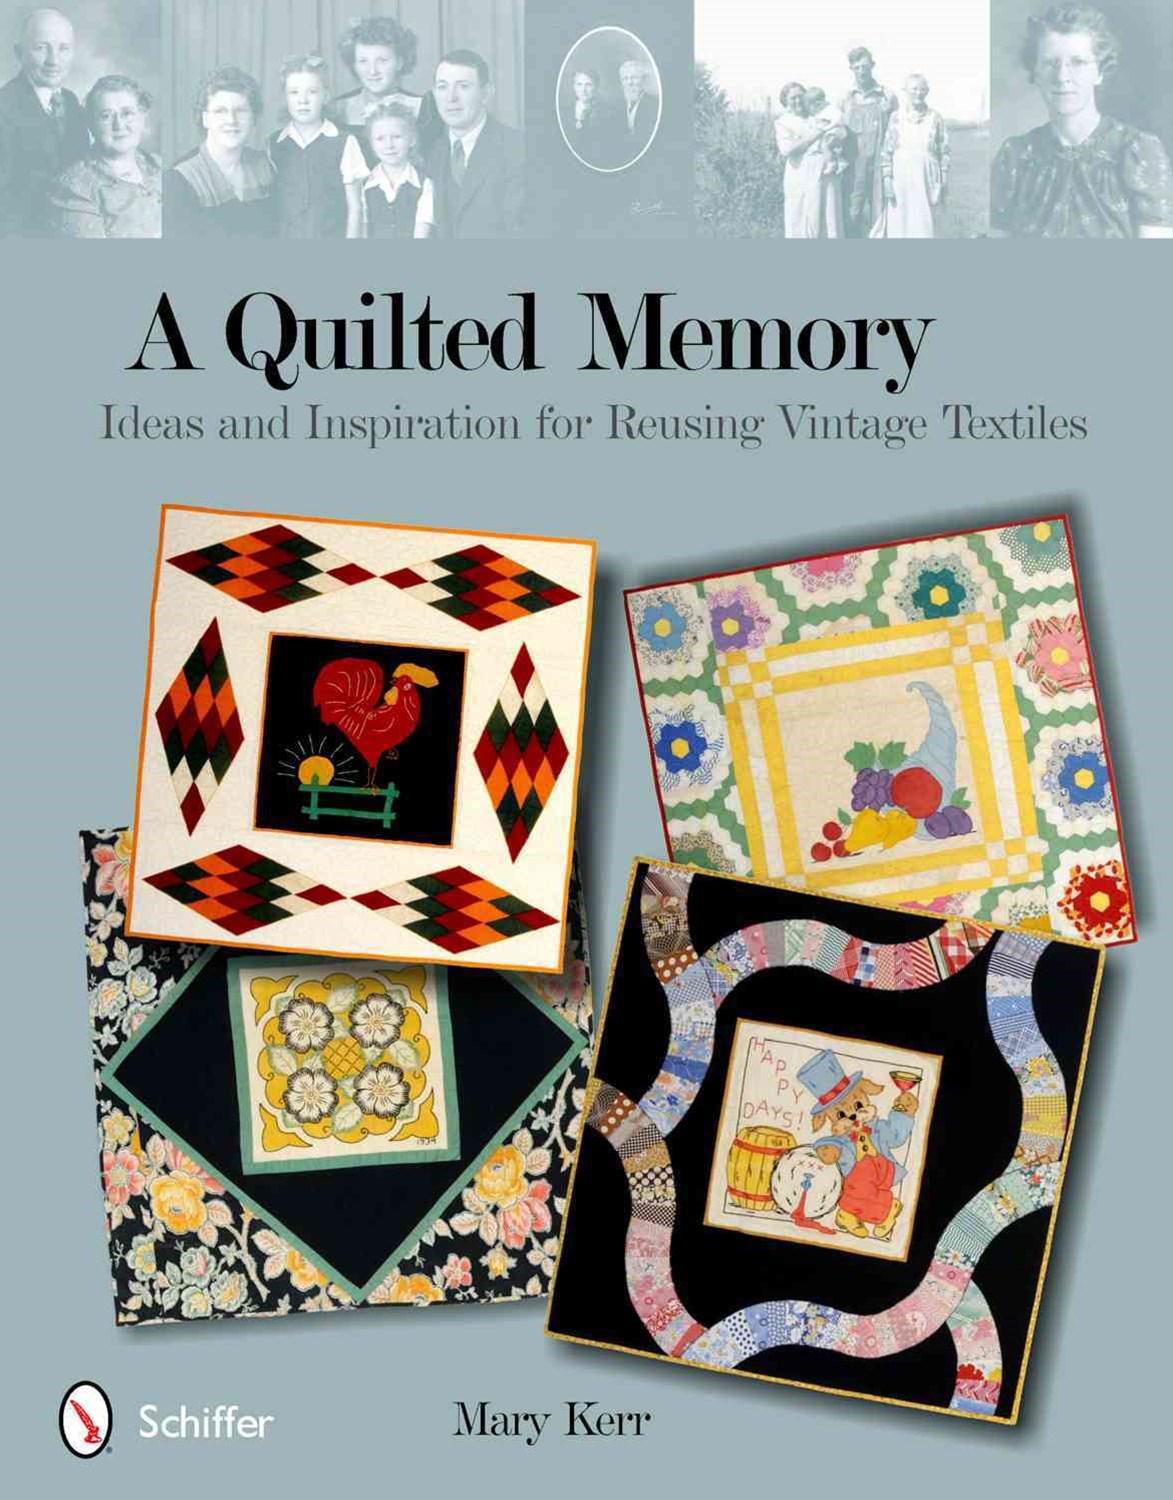 Quilted Memory: Ideas and Inspiration for Reusing Vintage Textiles